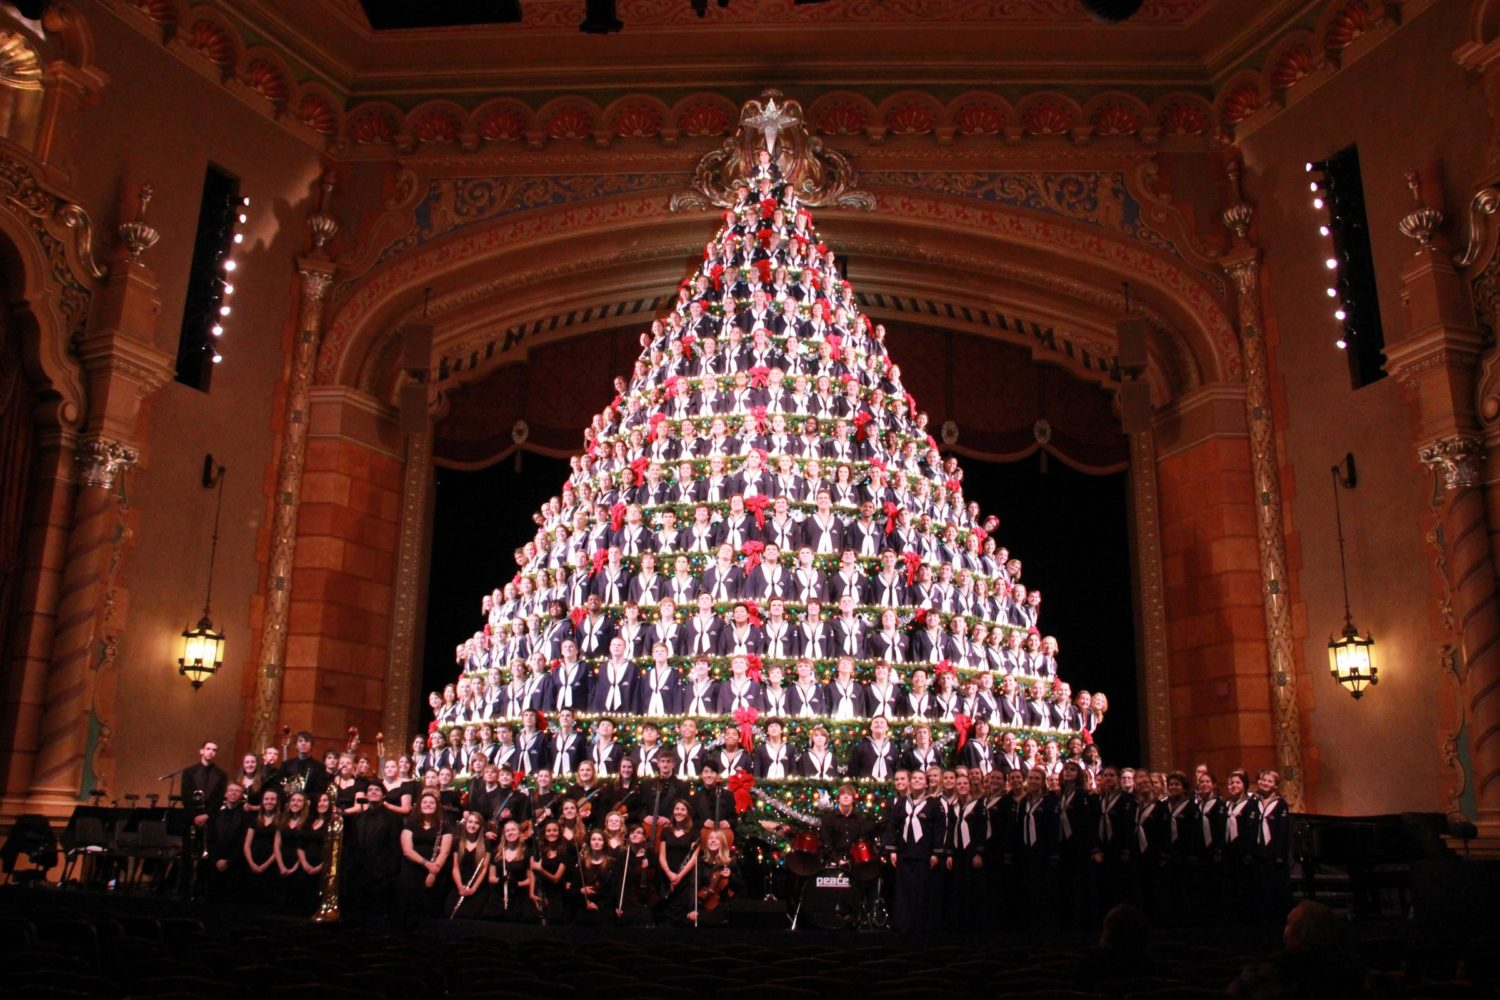 The Singing Christmas Tree 2019 America's Tallest Singing Christmas Tree | Visit Muskegon